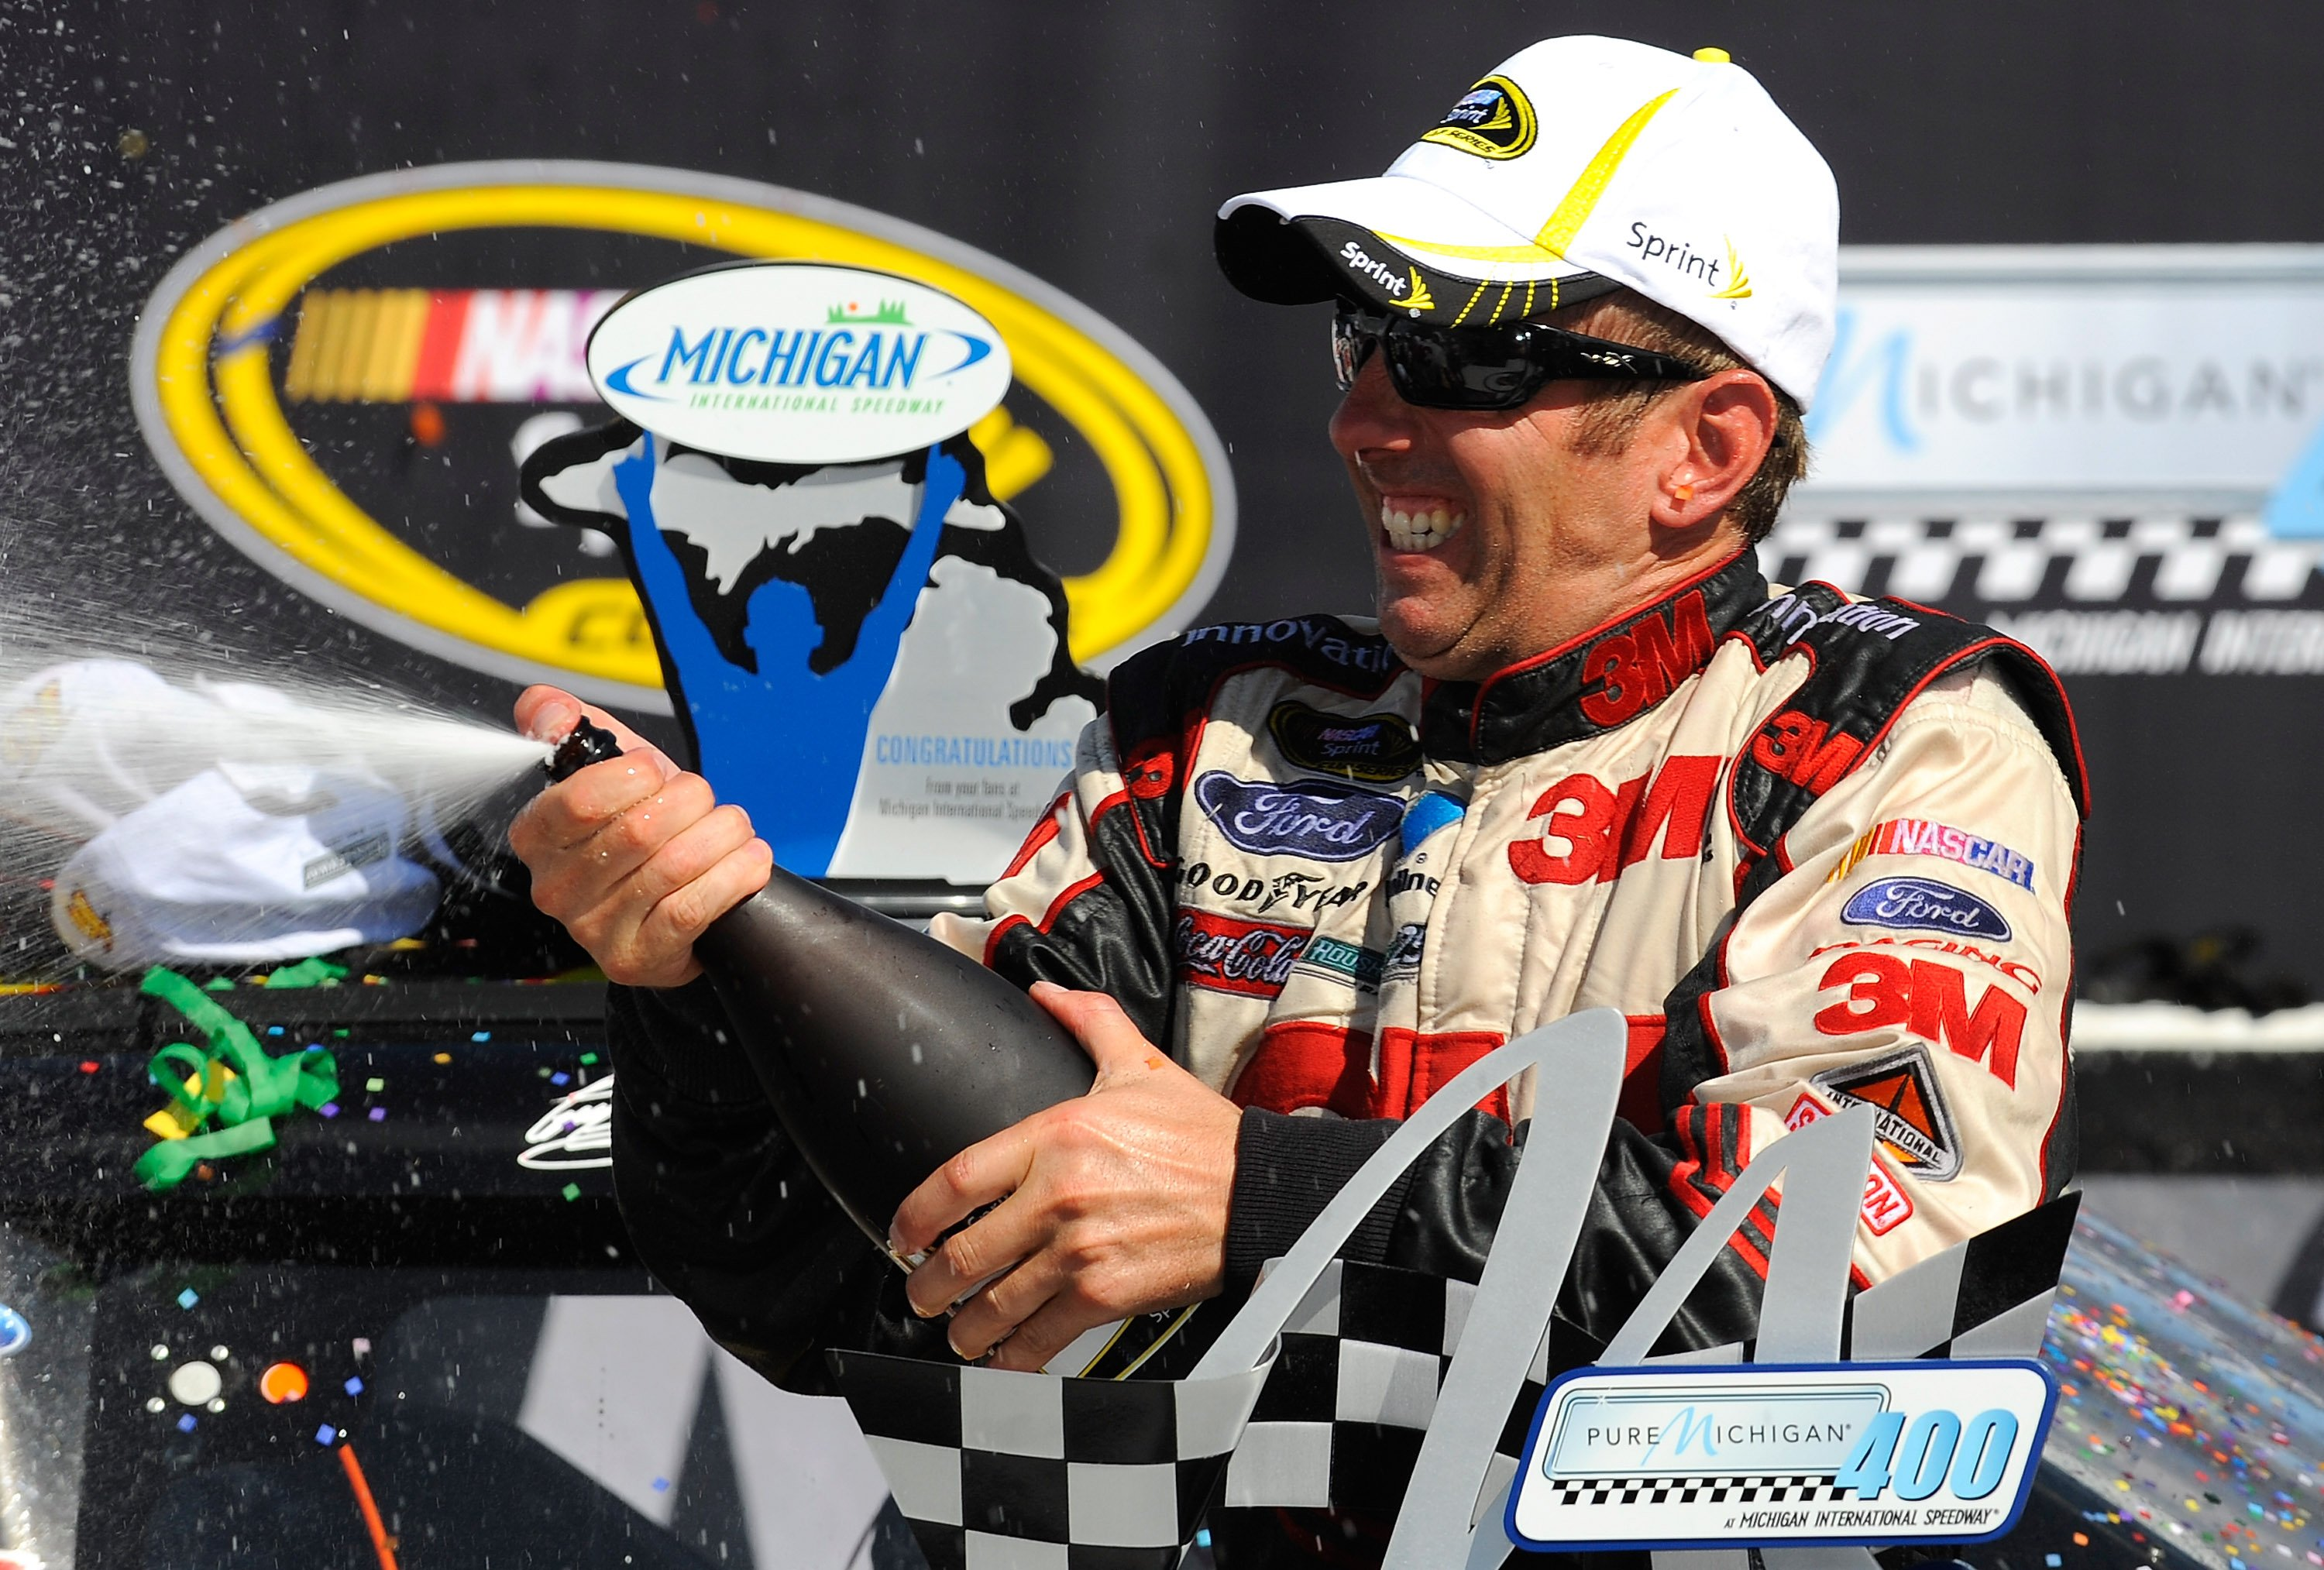 Greg Biffle wins at Michigan International Speedway